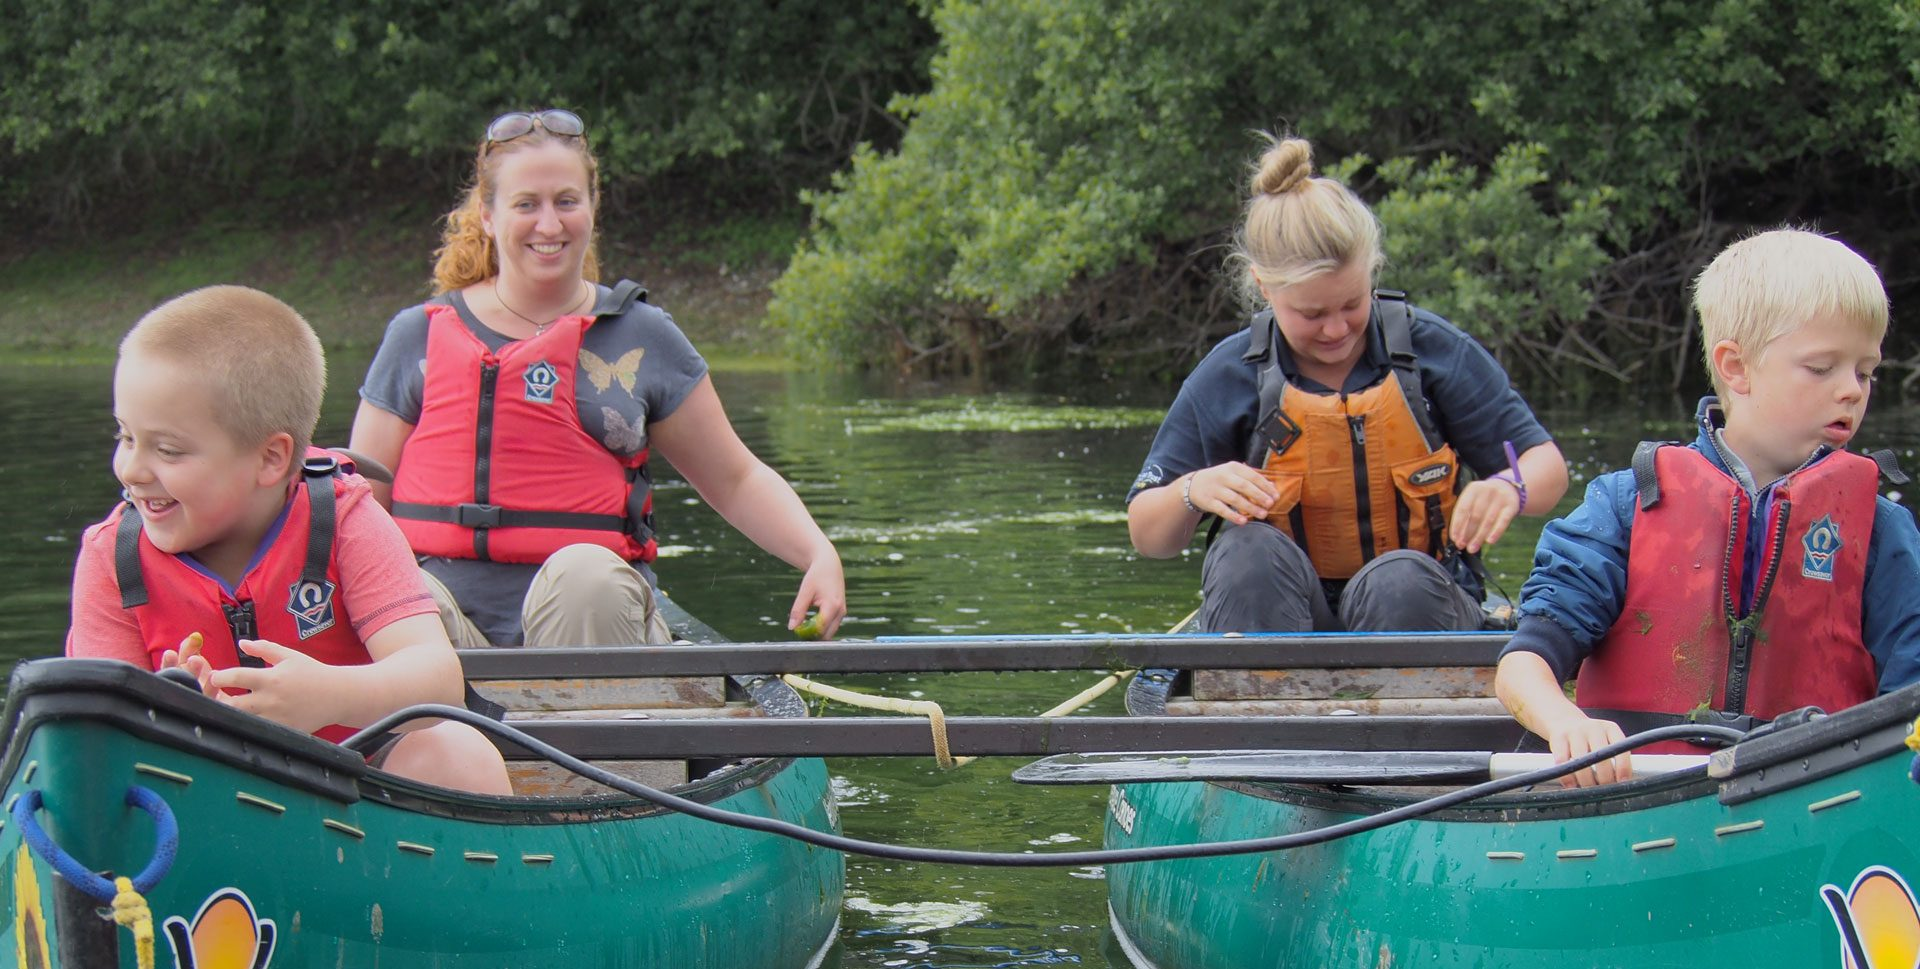 Calvert Trust Exmoor guests in tandem canoes on water